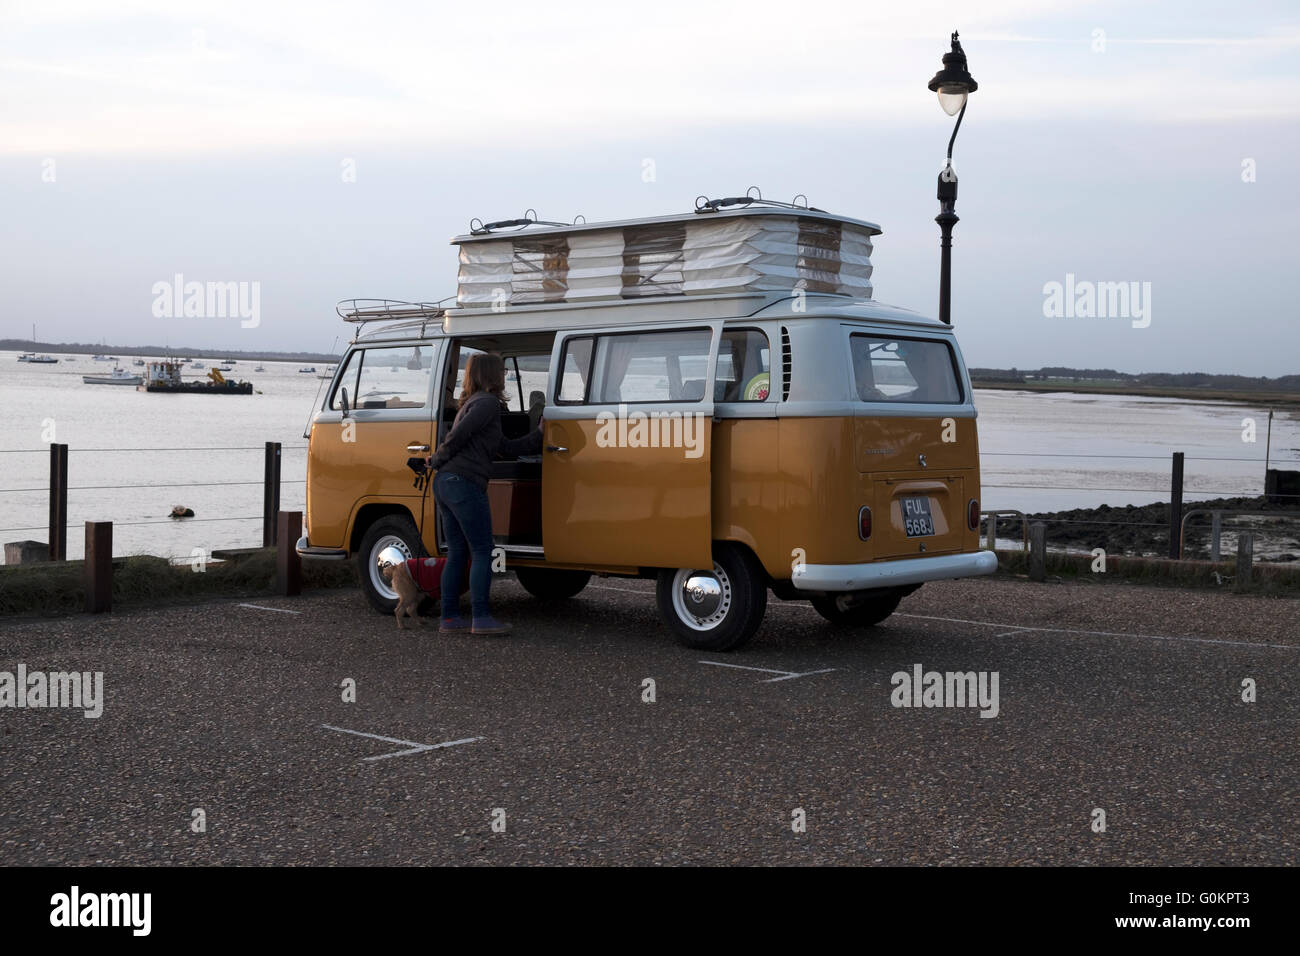 Vintage VW camper bus, Bawdsey Ferry, Suffolk, UK. - Stock Image